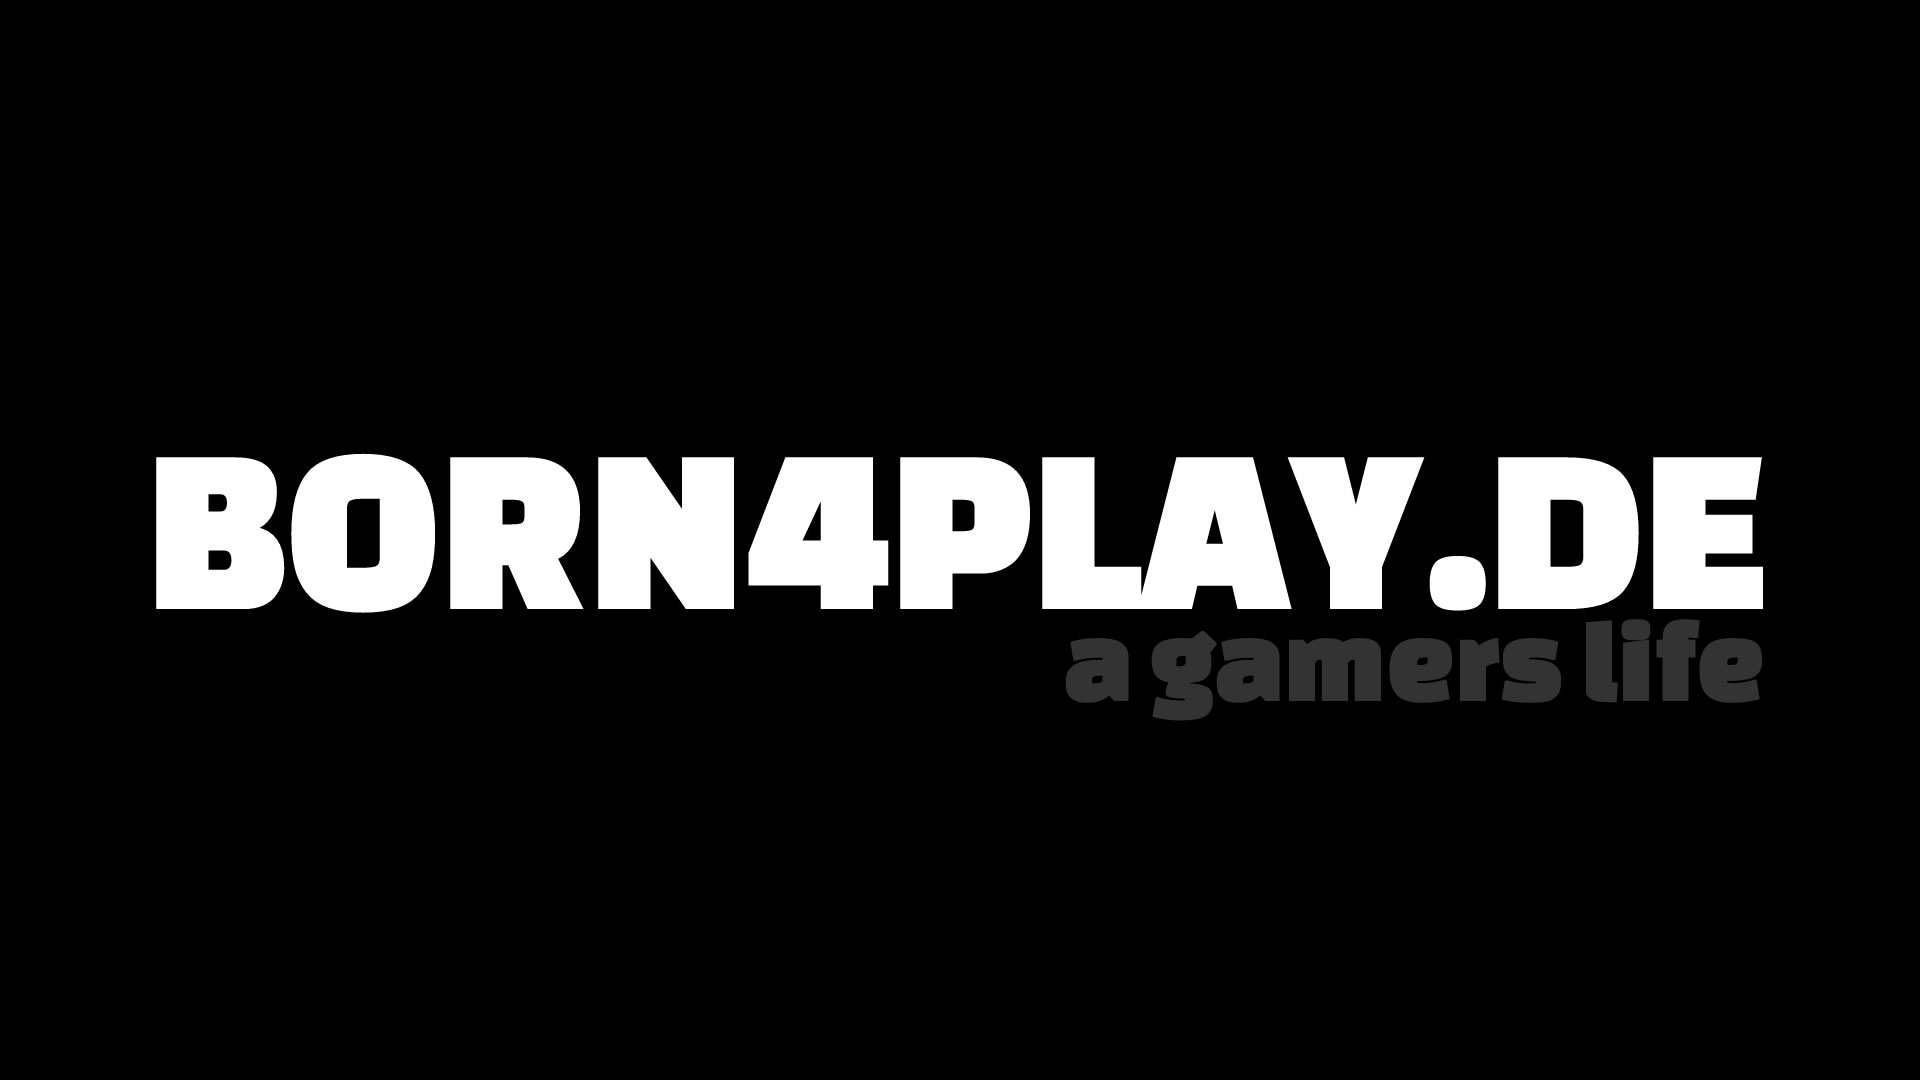 BORN4PLAY - a gamers life